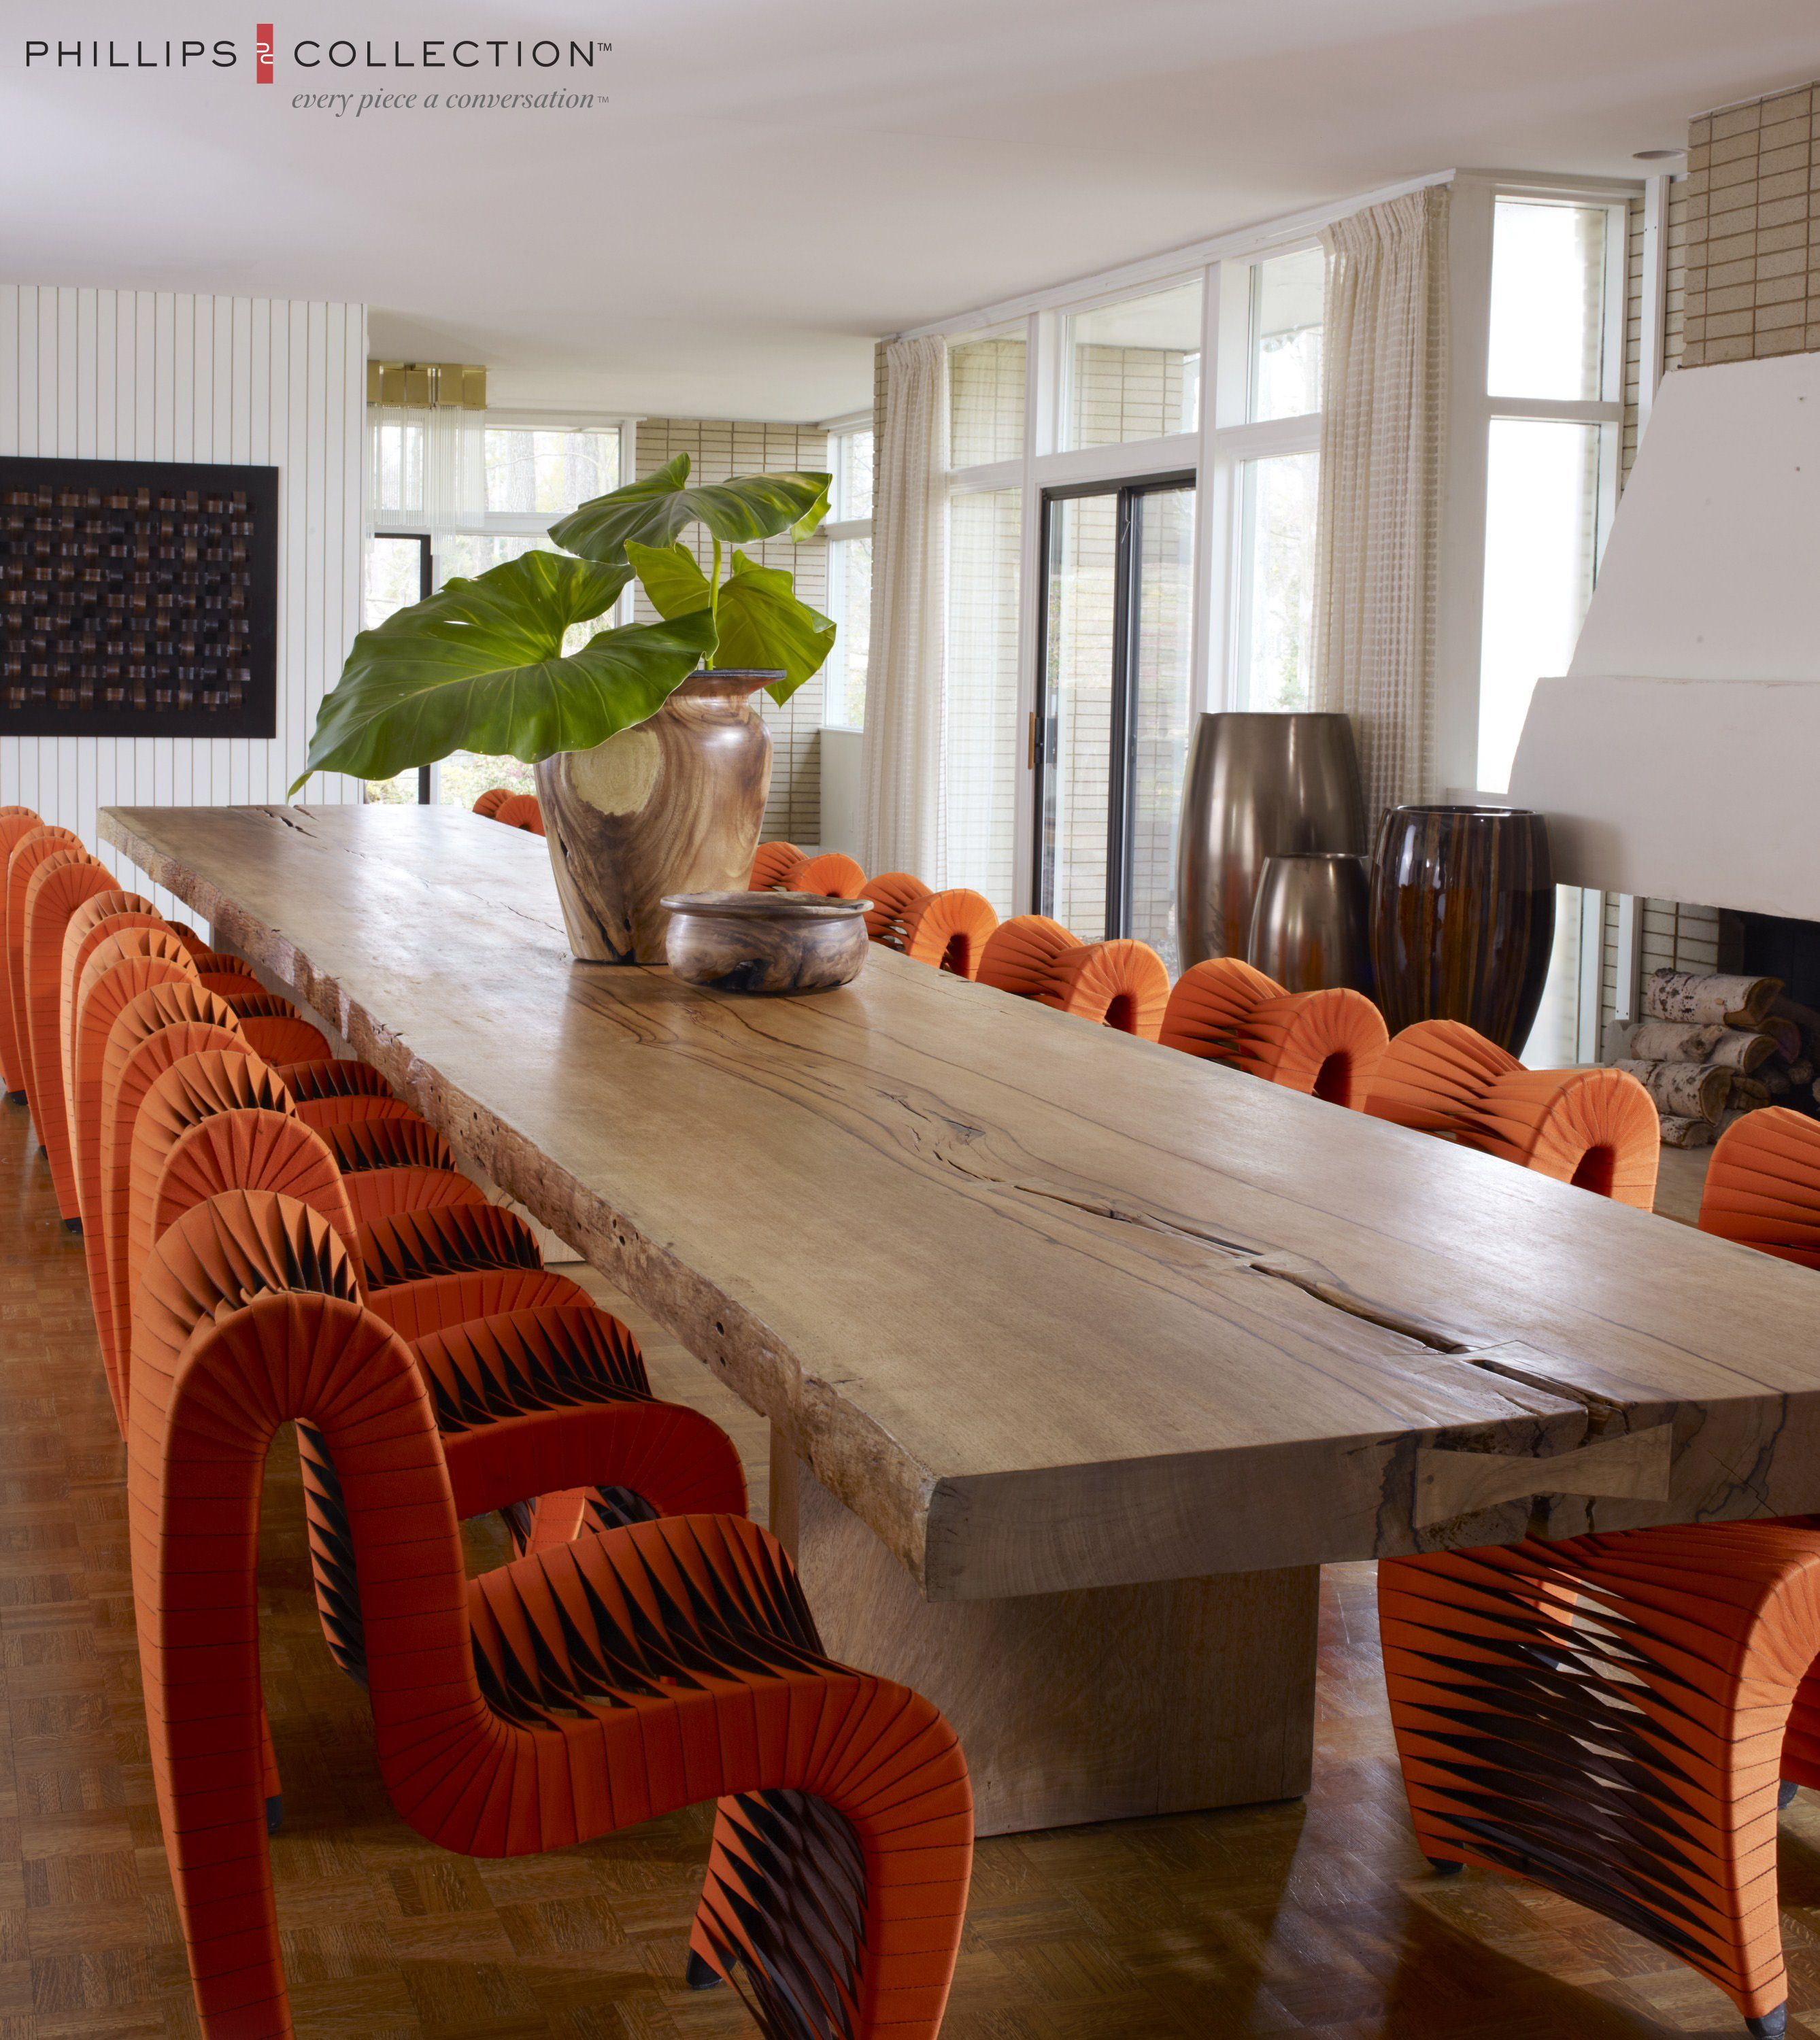 Se Rosse Calligaris e of a kind dining table and orange seat belt chairs